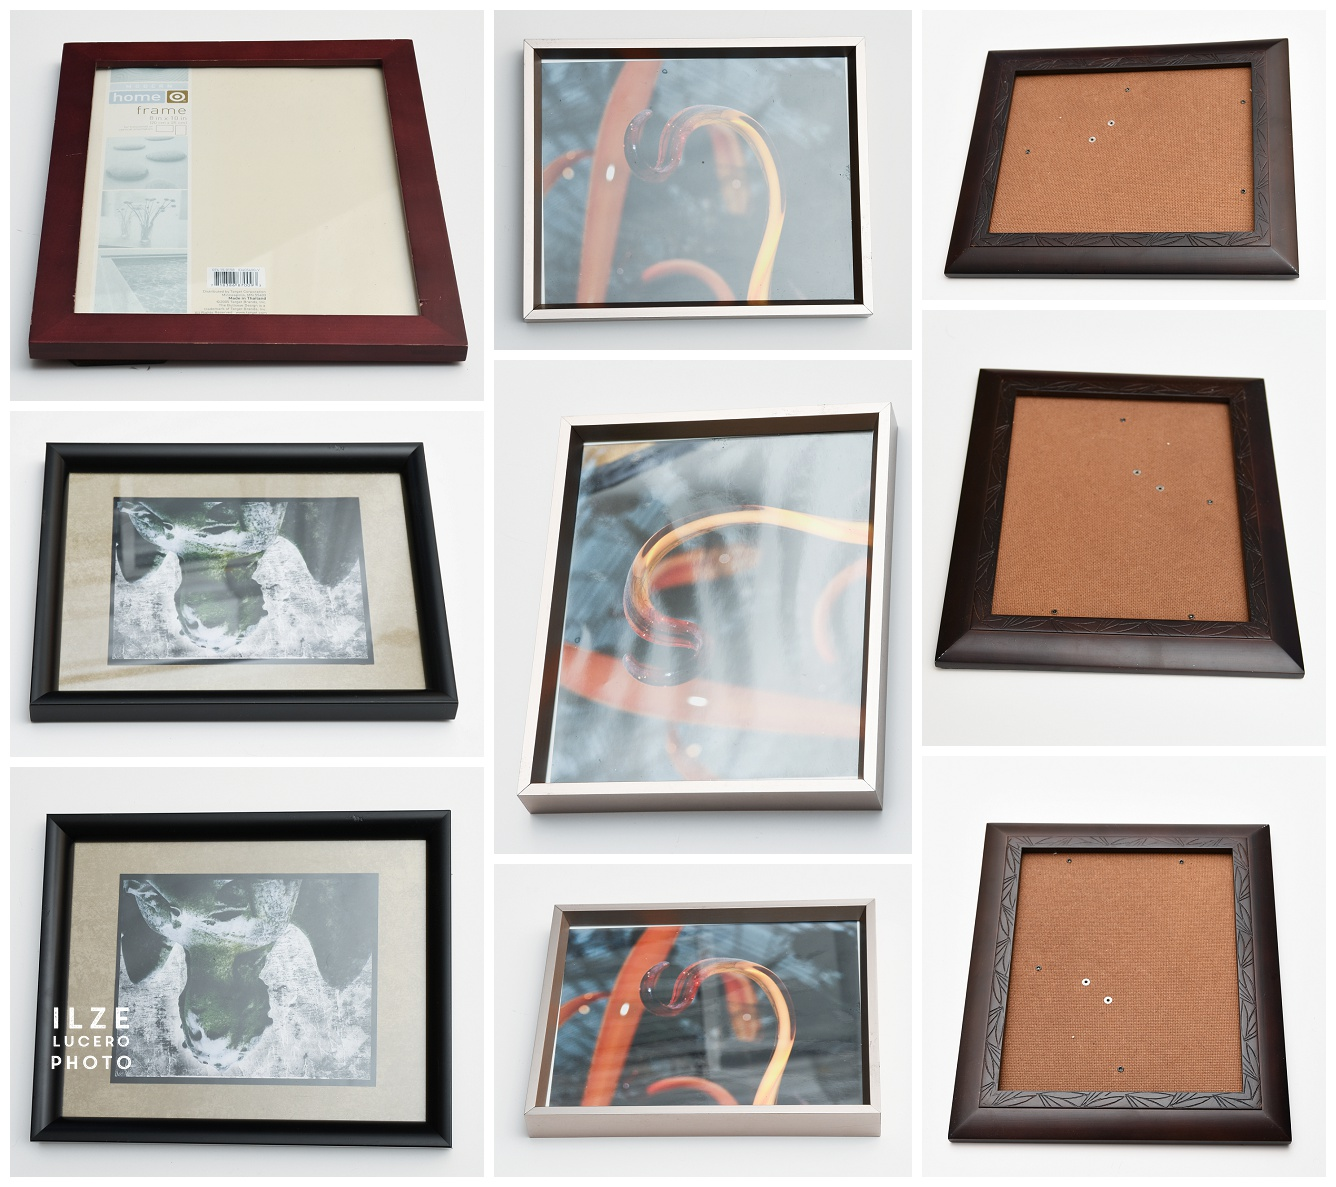 Free Frame photos for commercial use